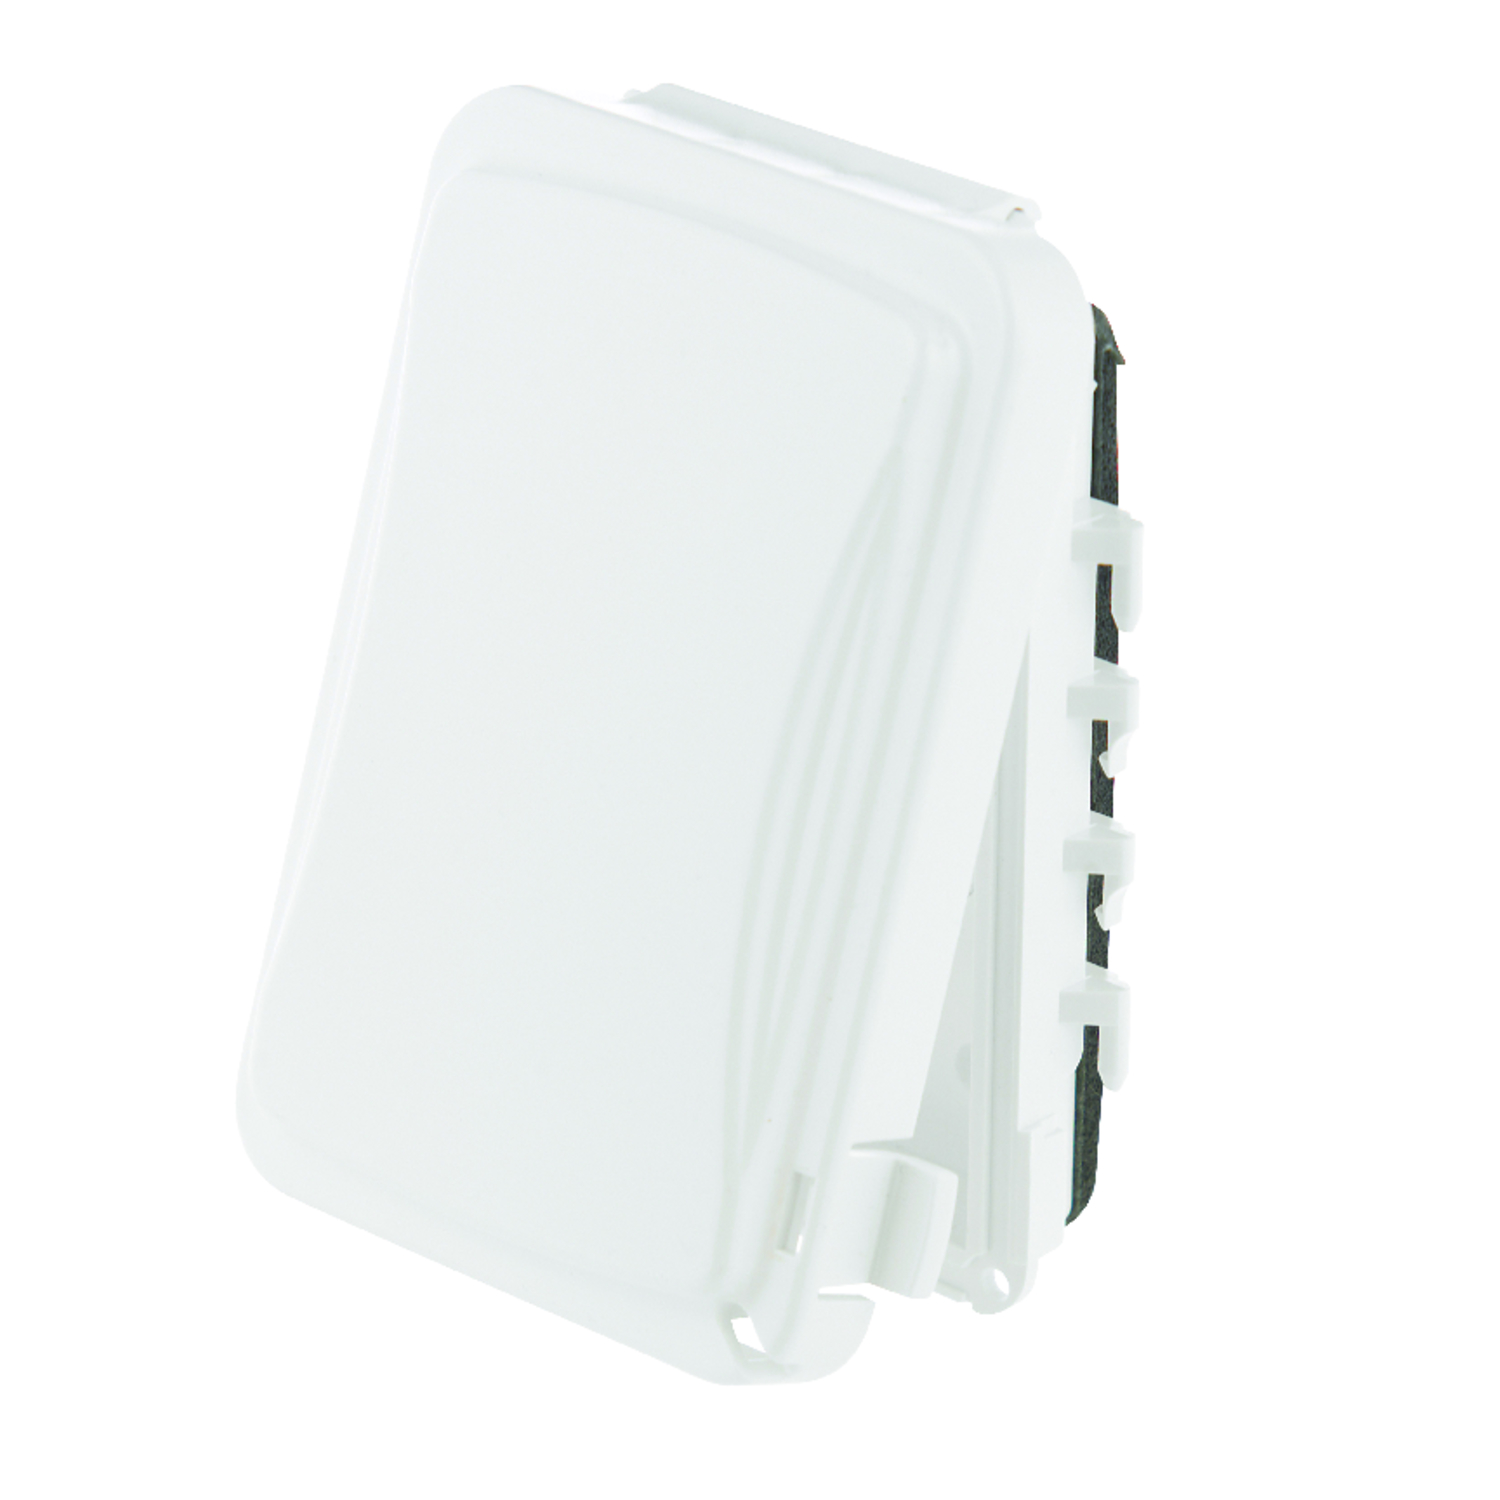 TayMac  Rectangle  Plastic  1 gang Receptacle Box Cover  For Protection from Weather